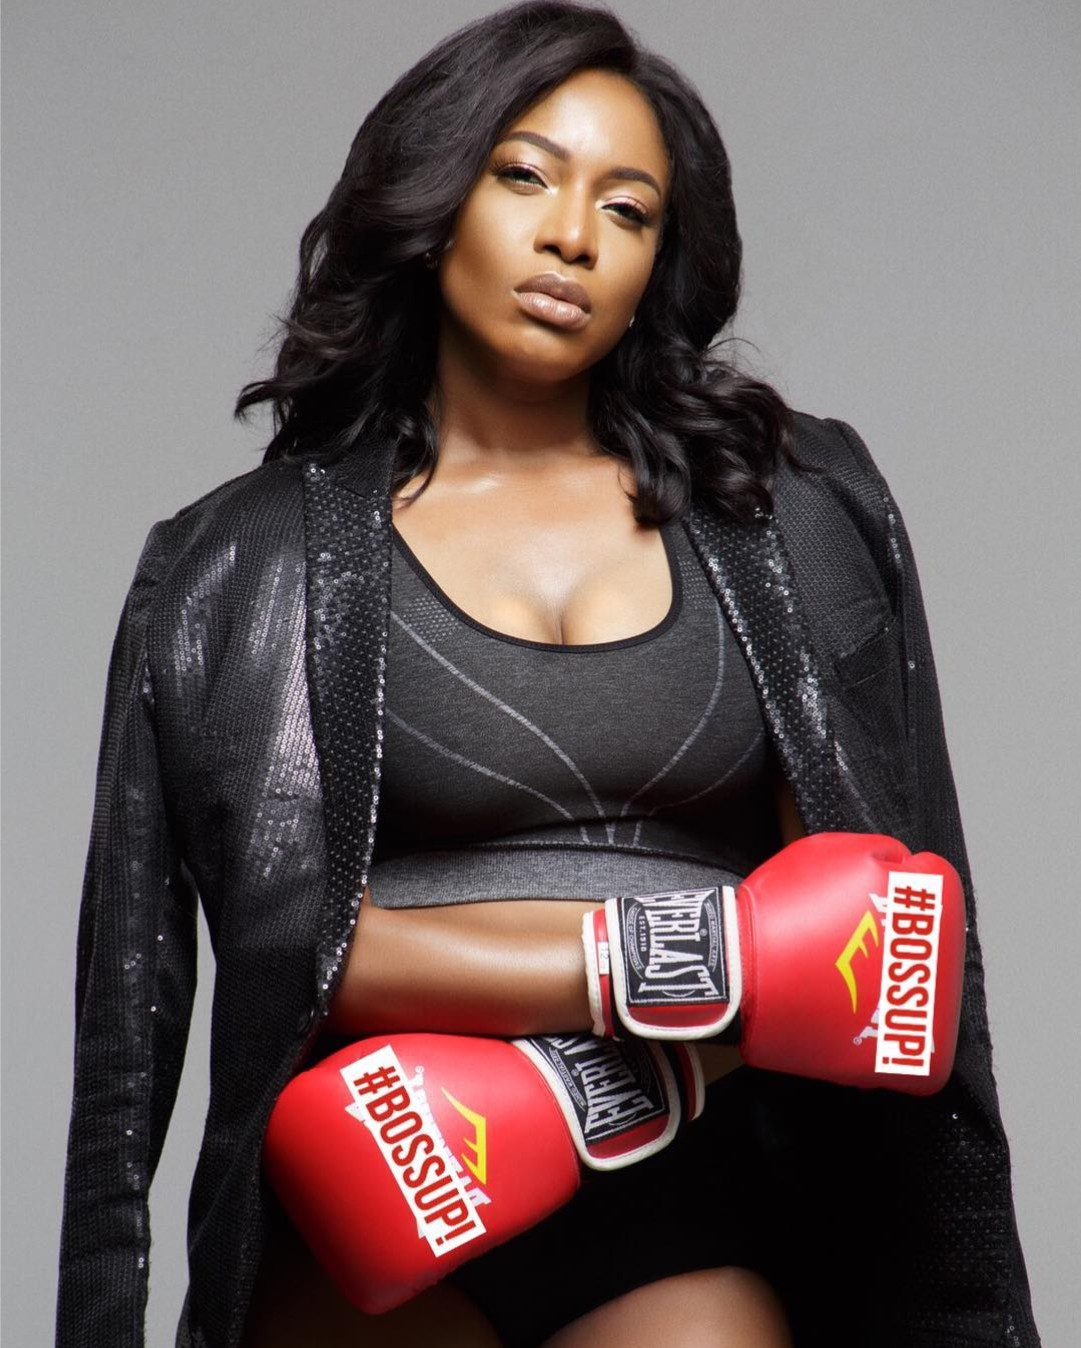 Chika Ike Transforms Into Sexy Boxer (2)